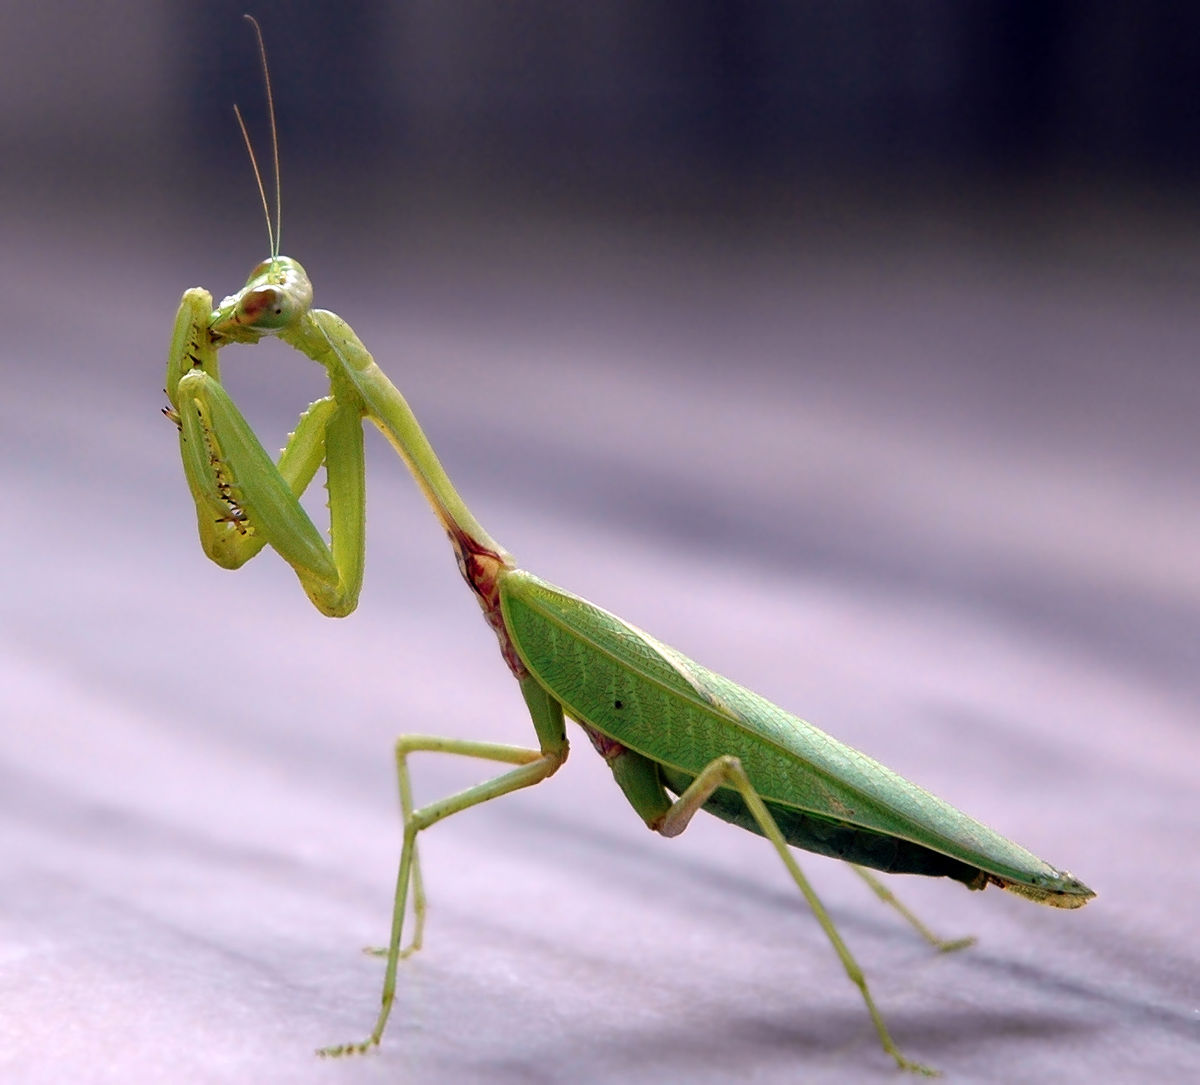 Mantis - Wikipedia